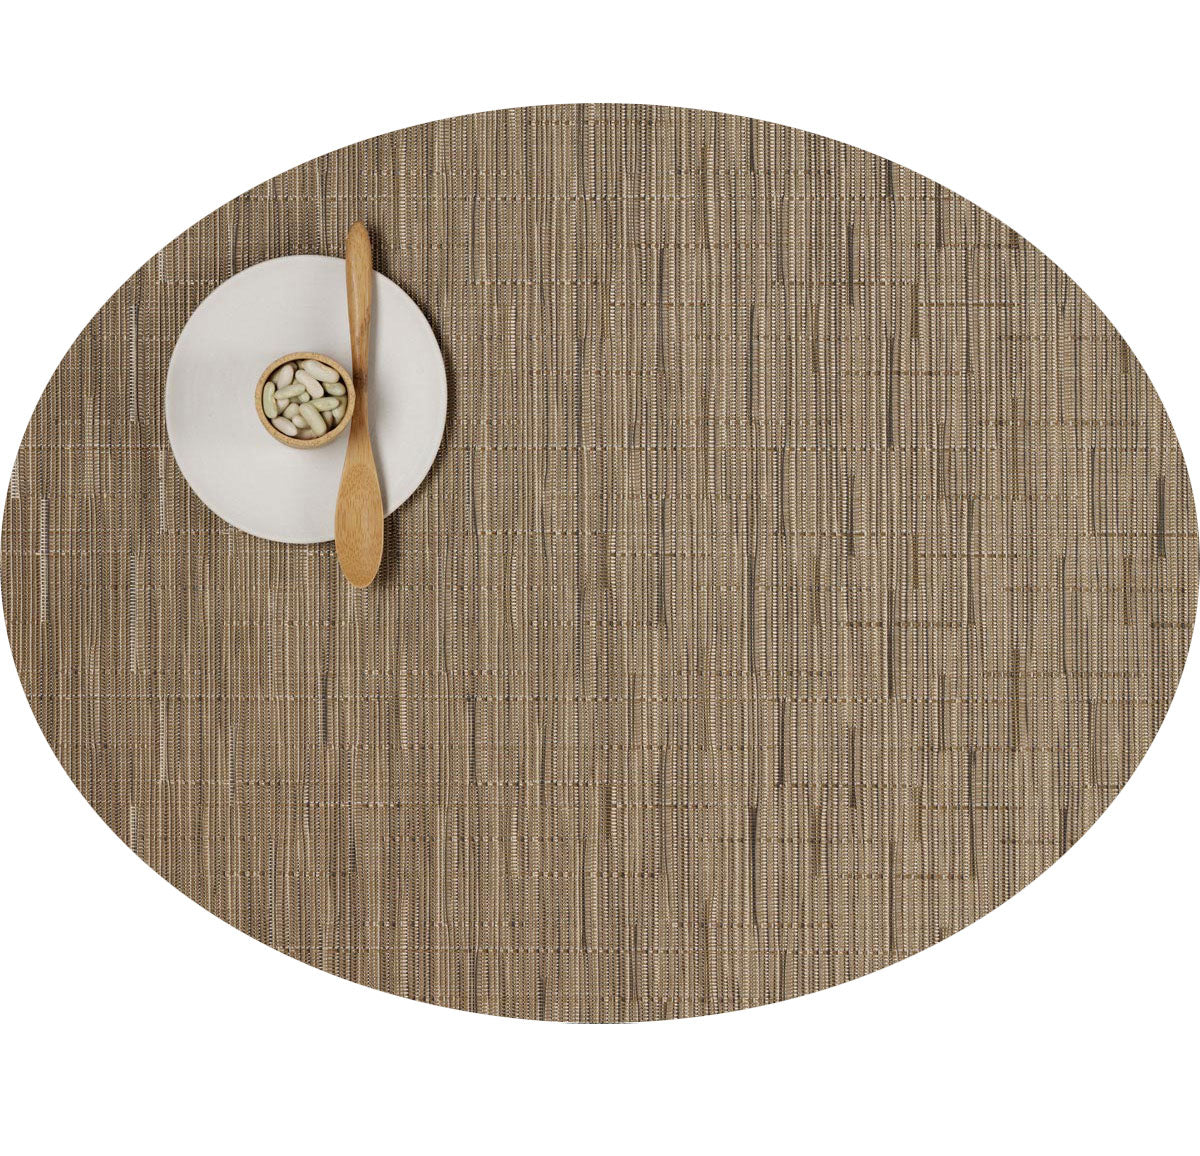 Bamboo Placemats - Oval